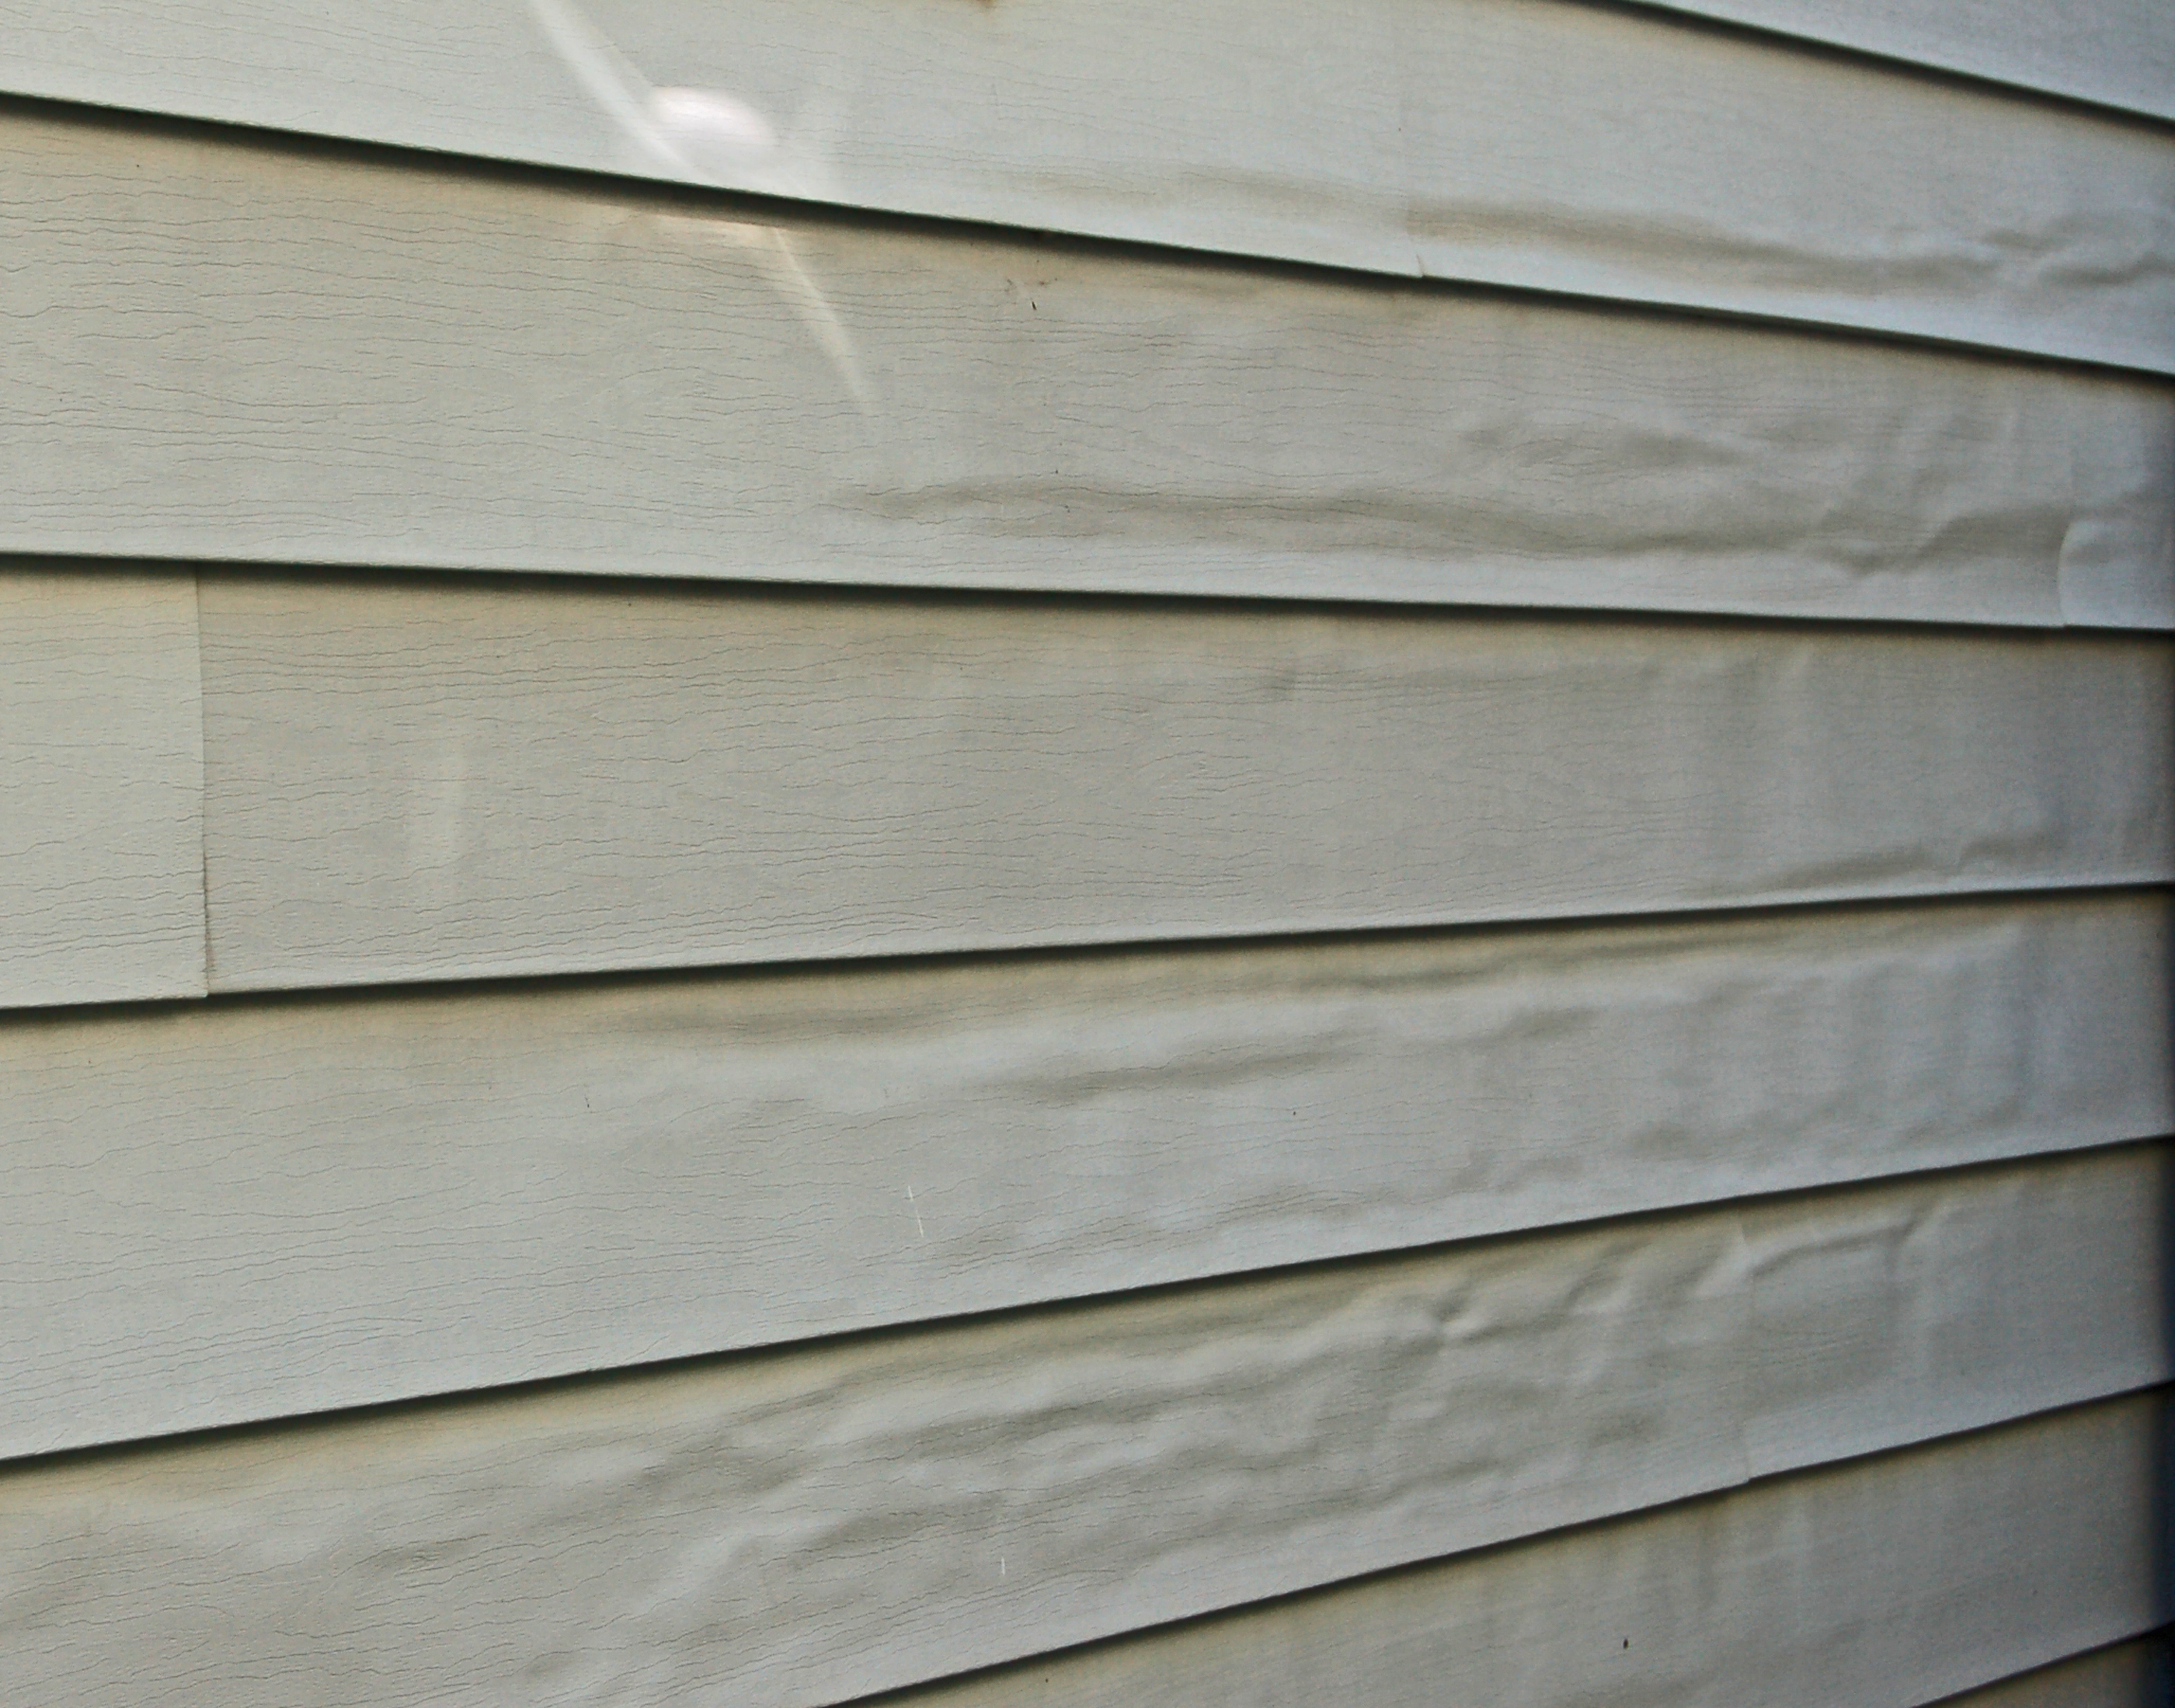 vinyl siding car parts pool covers and paint melting on